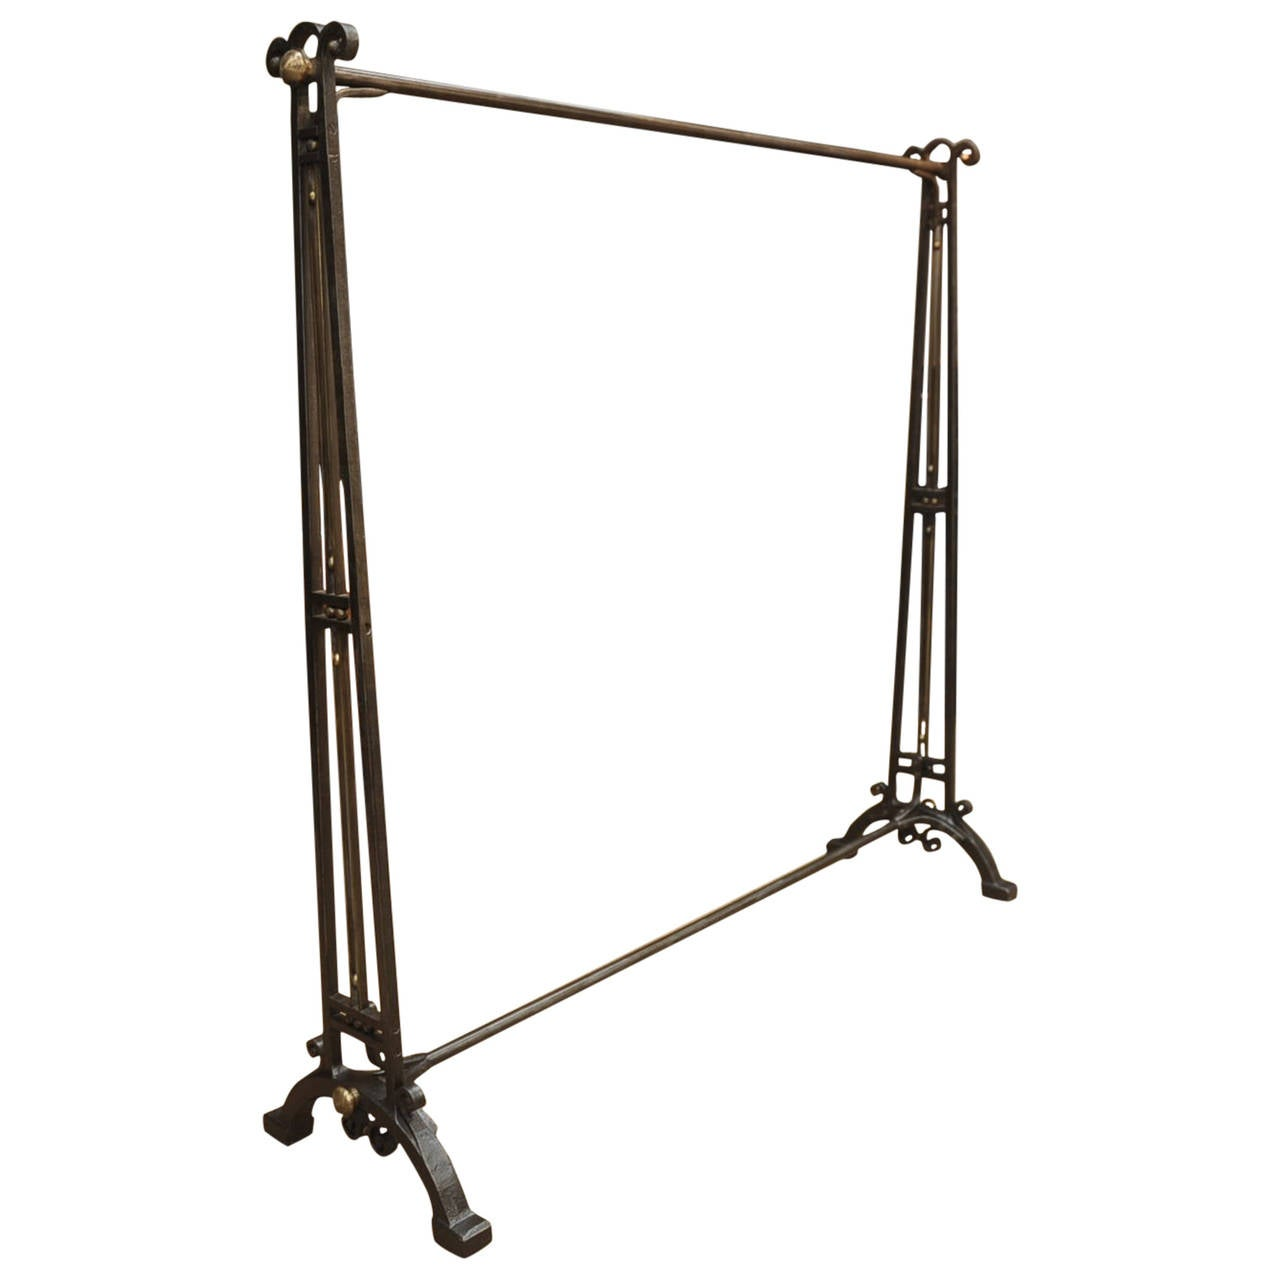 French Art Deco Wrought Iron And Brass Coat Rack Circa 1925 1